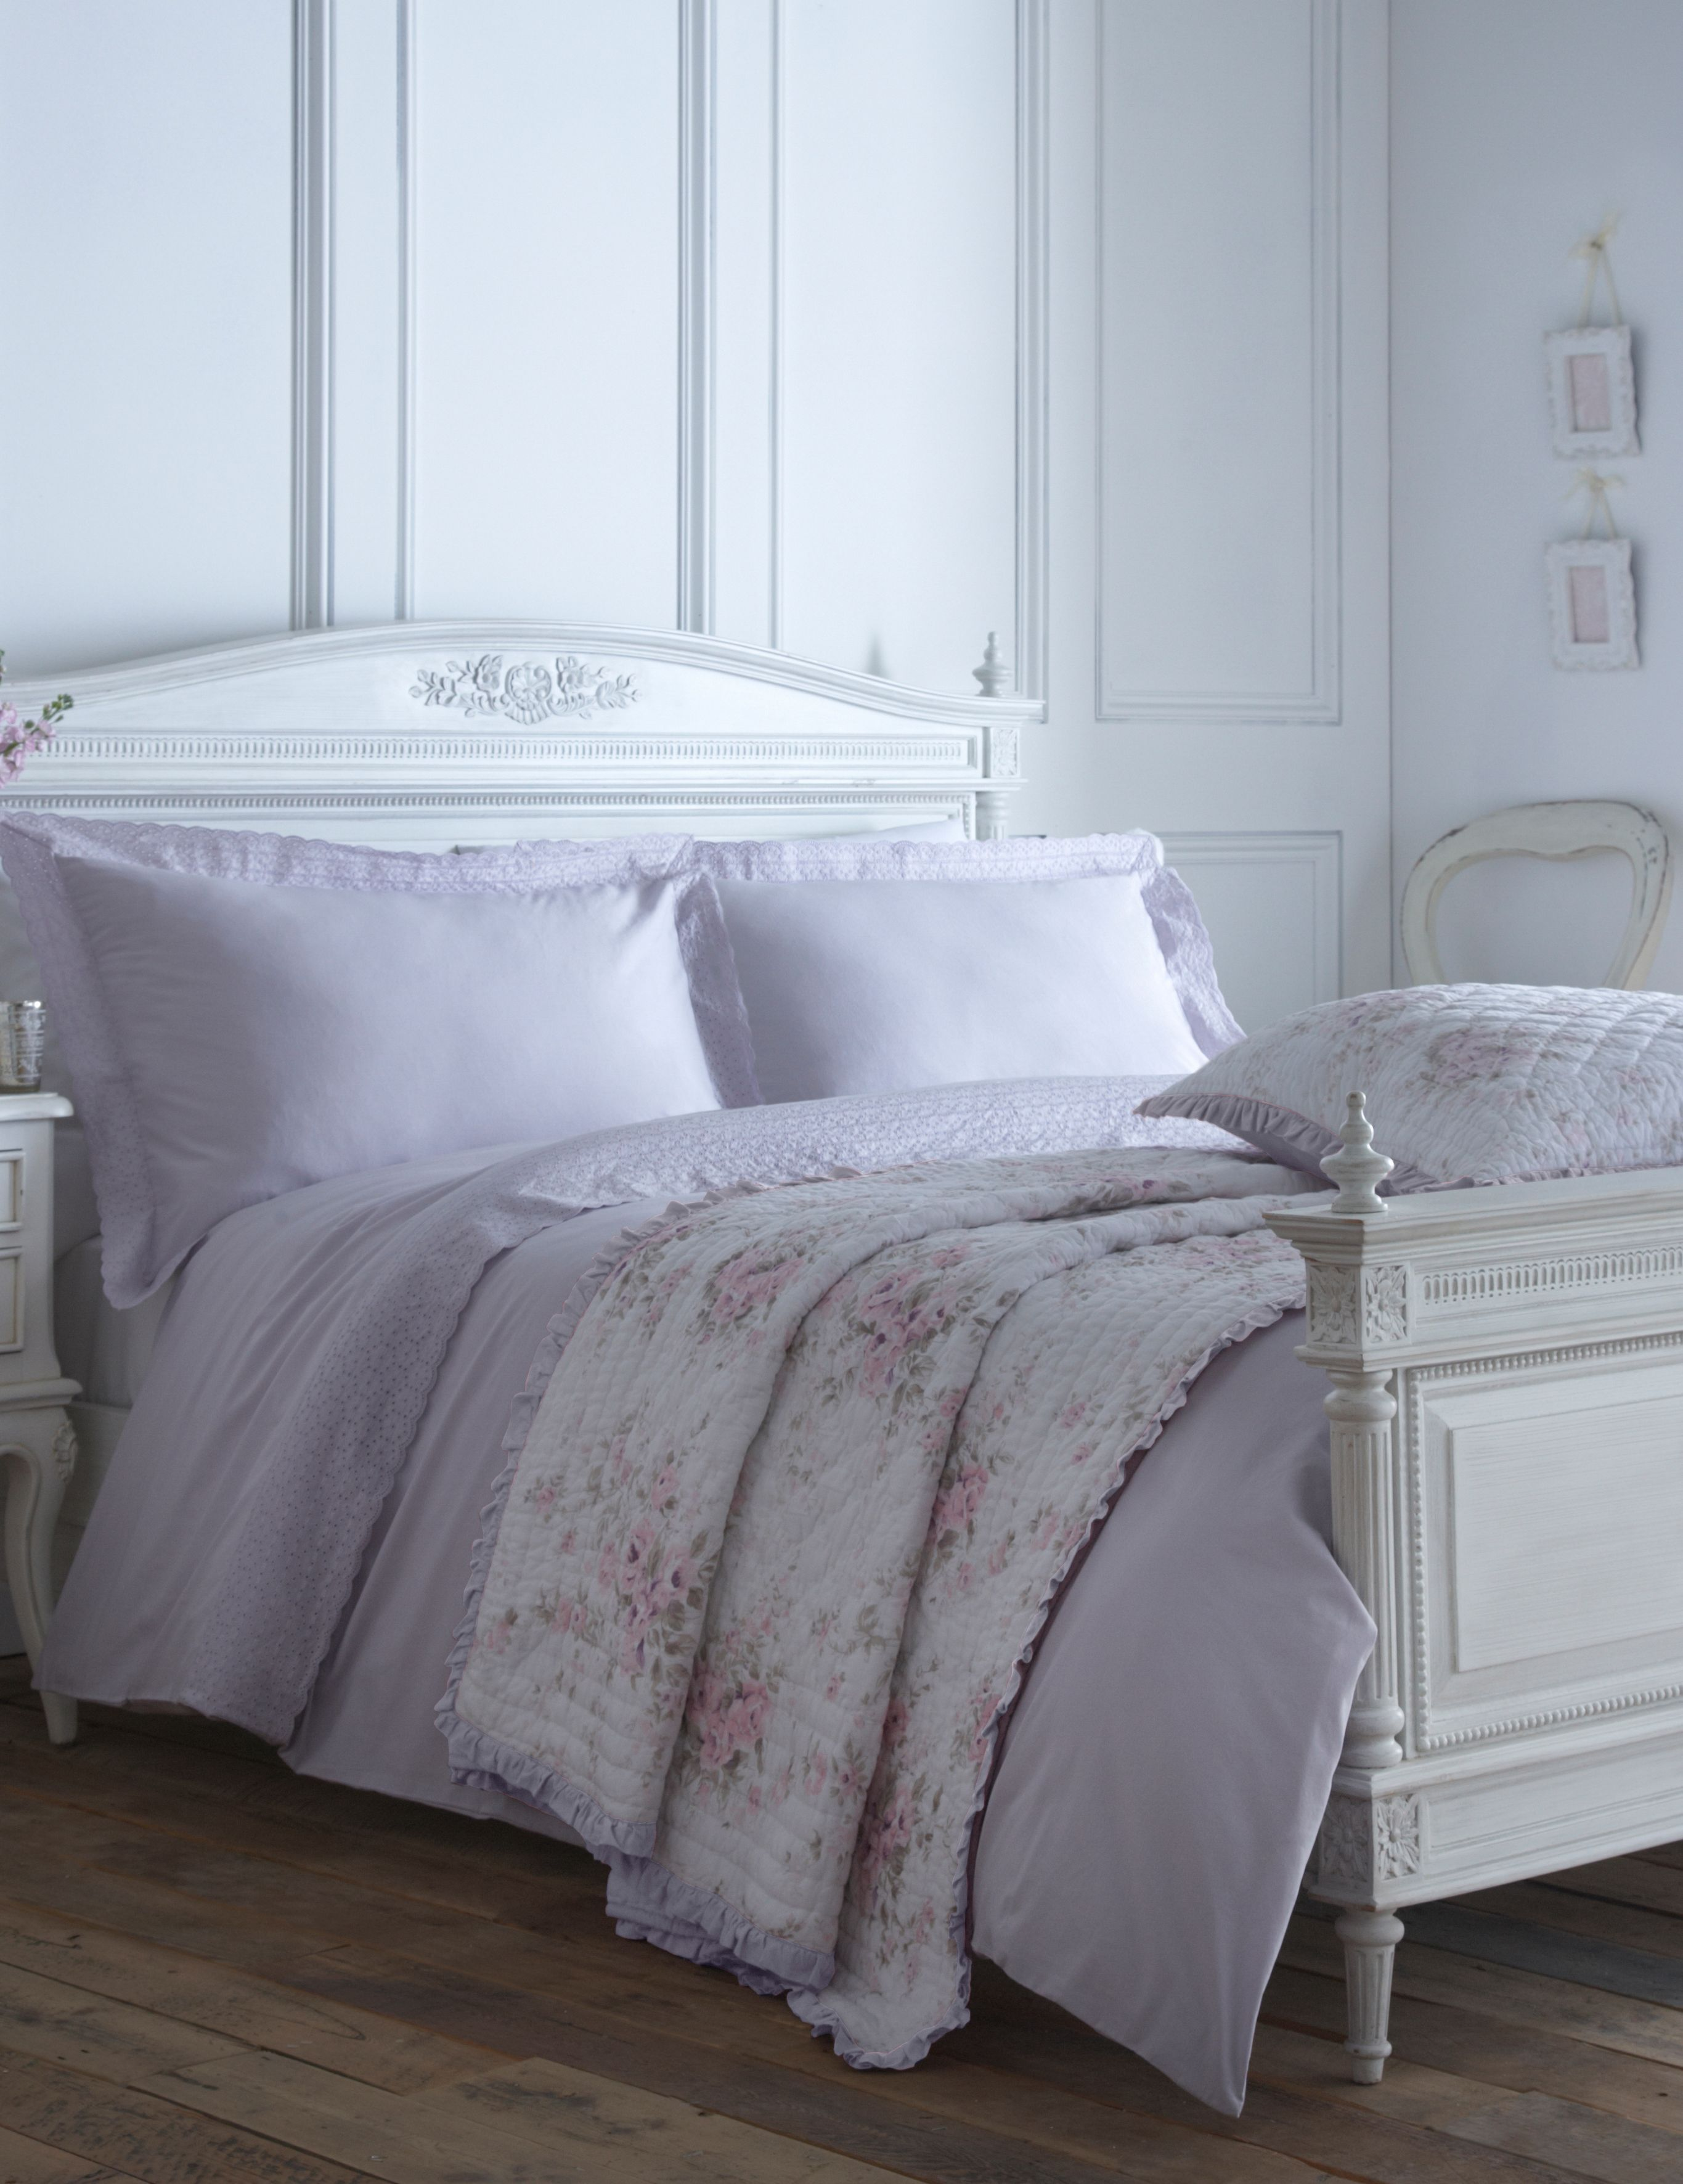 Embroidered Frill double duvet cover pink